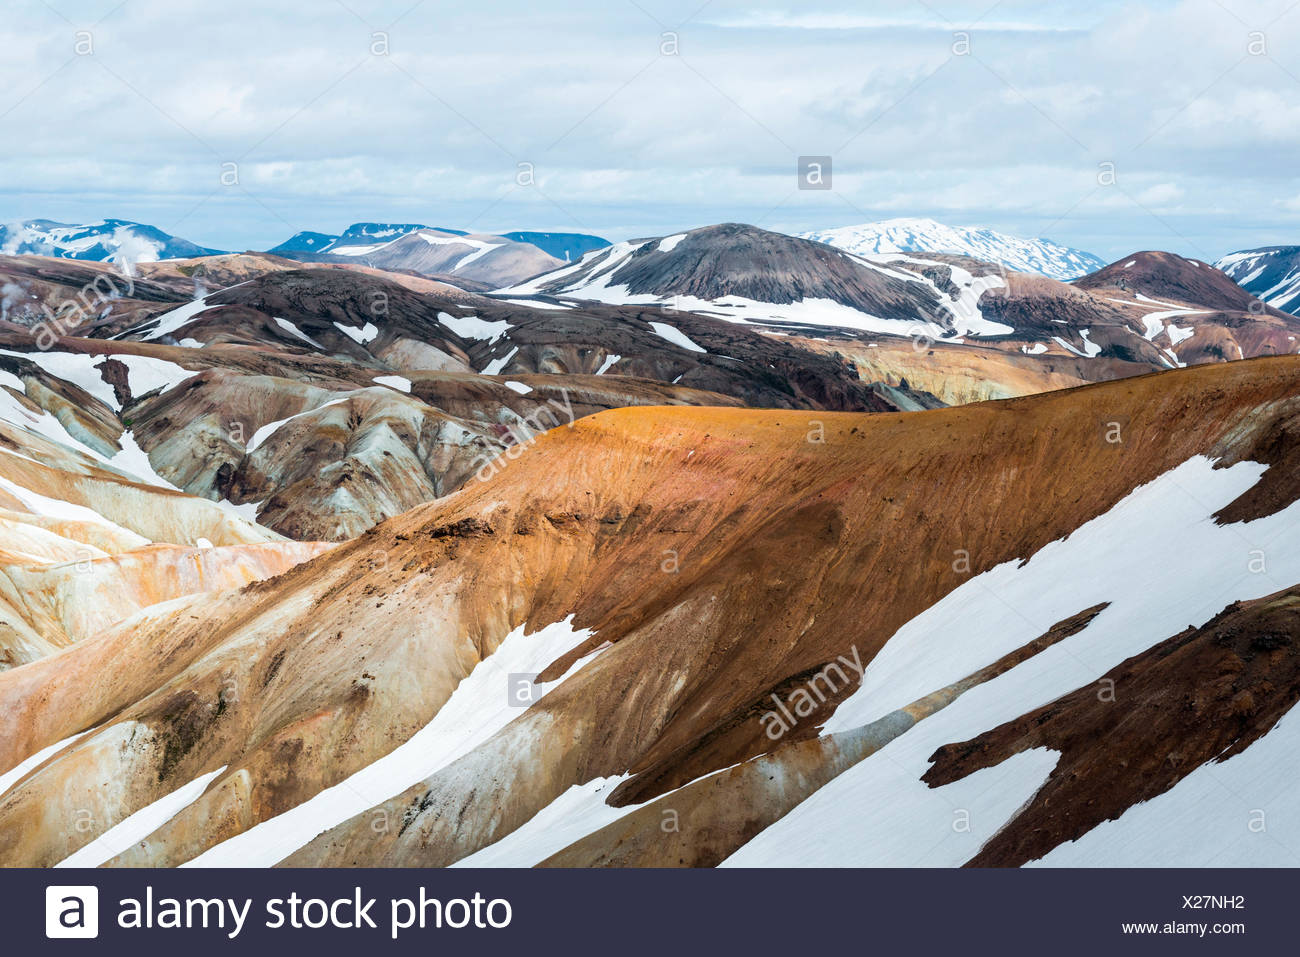 The immense colours' contrast in Landmannalaugar, Iceland - Stock Image